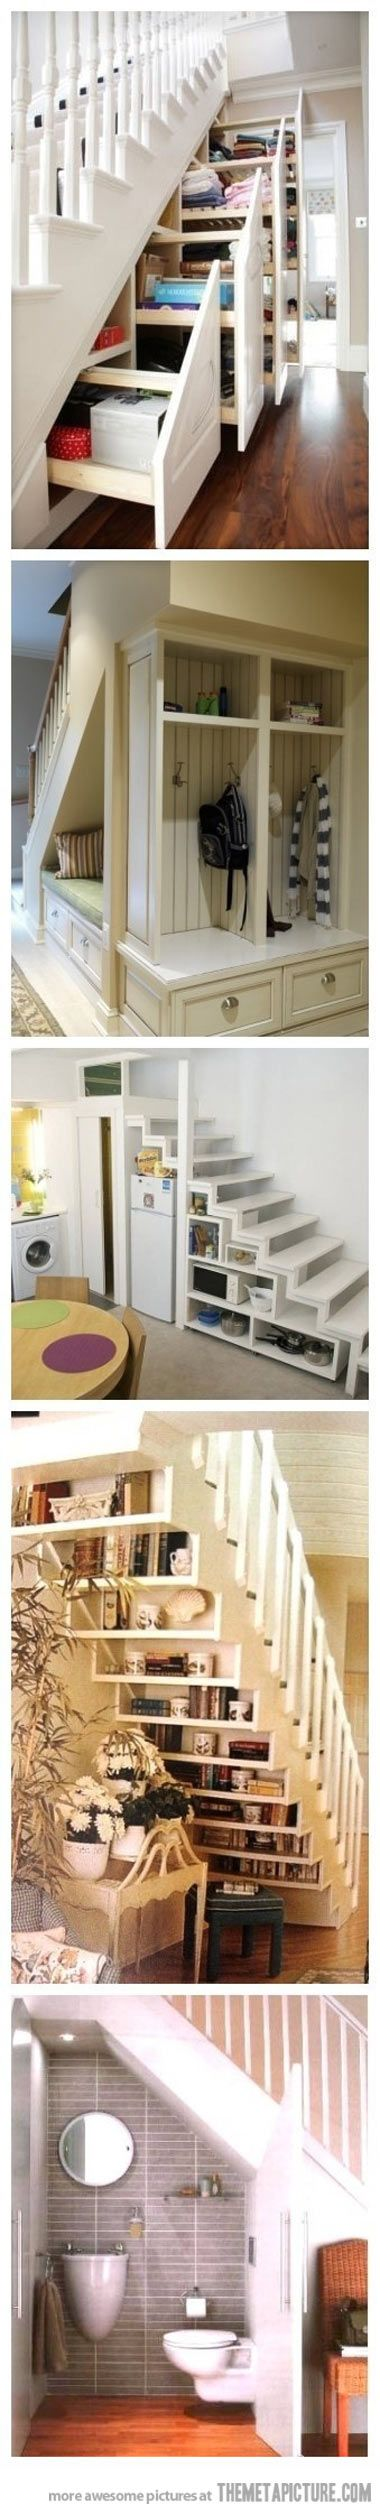 Brilliant ideas for under the stairs... - The Meta Picture. Fabulous storage ideas, great way to use up dead space under the stairs!